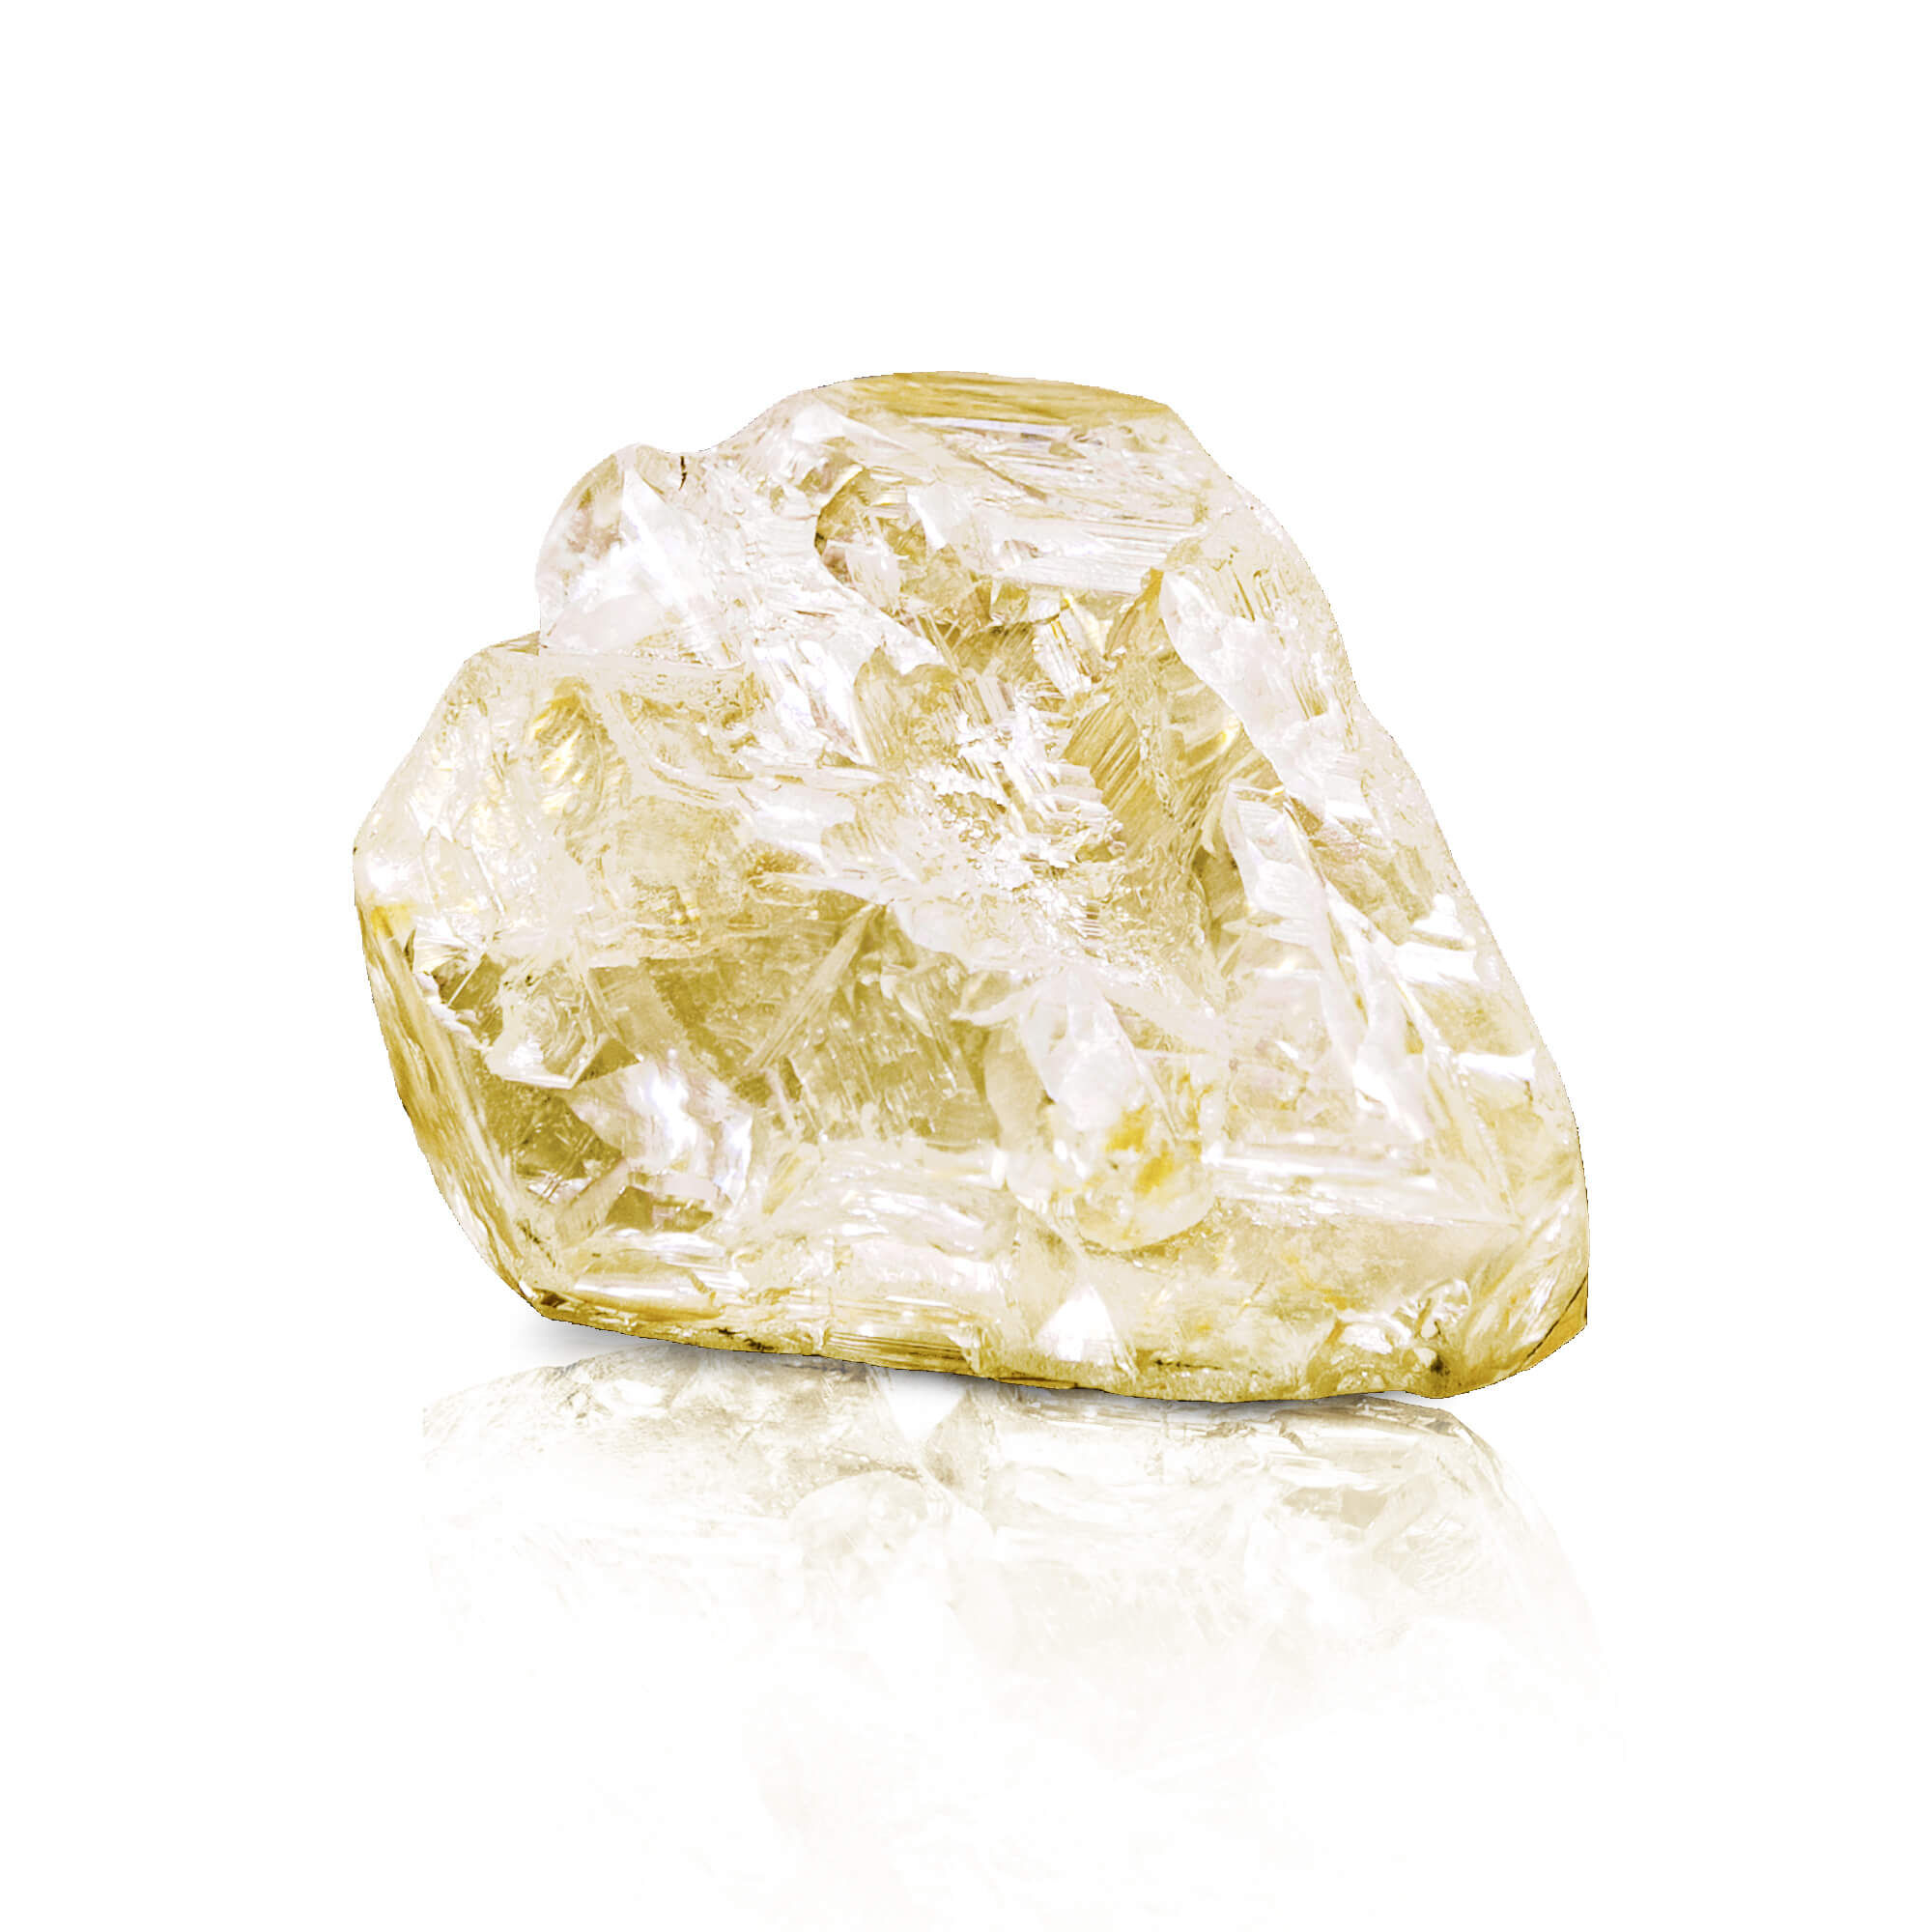 The rough stone of the 709 carat Peace Diamond acquired by Graff